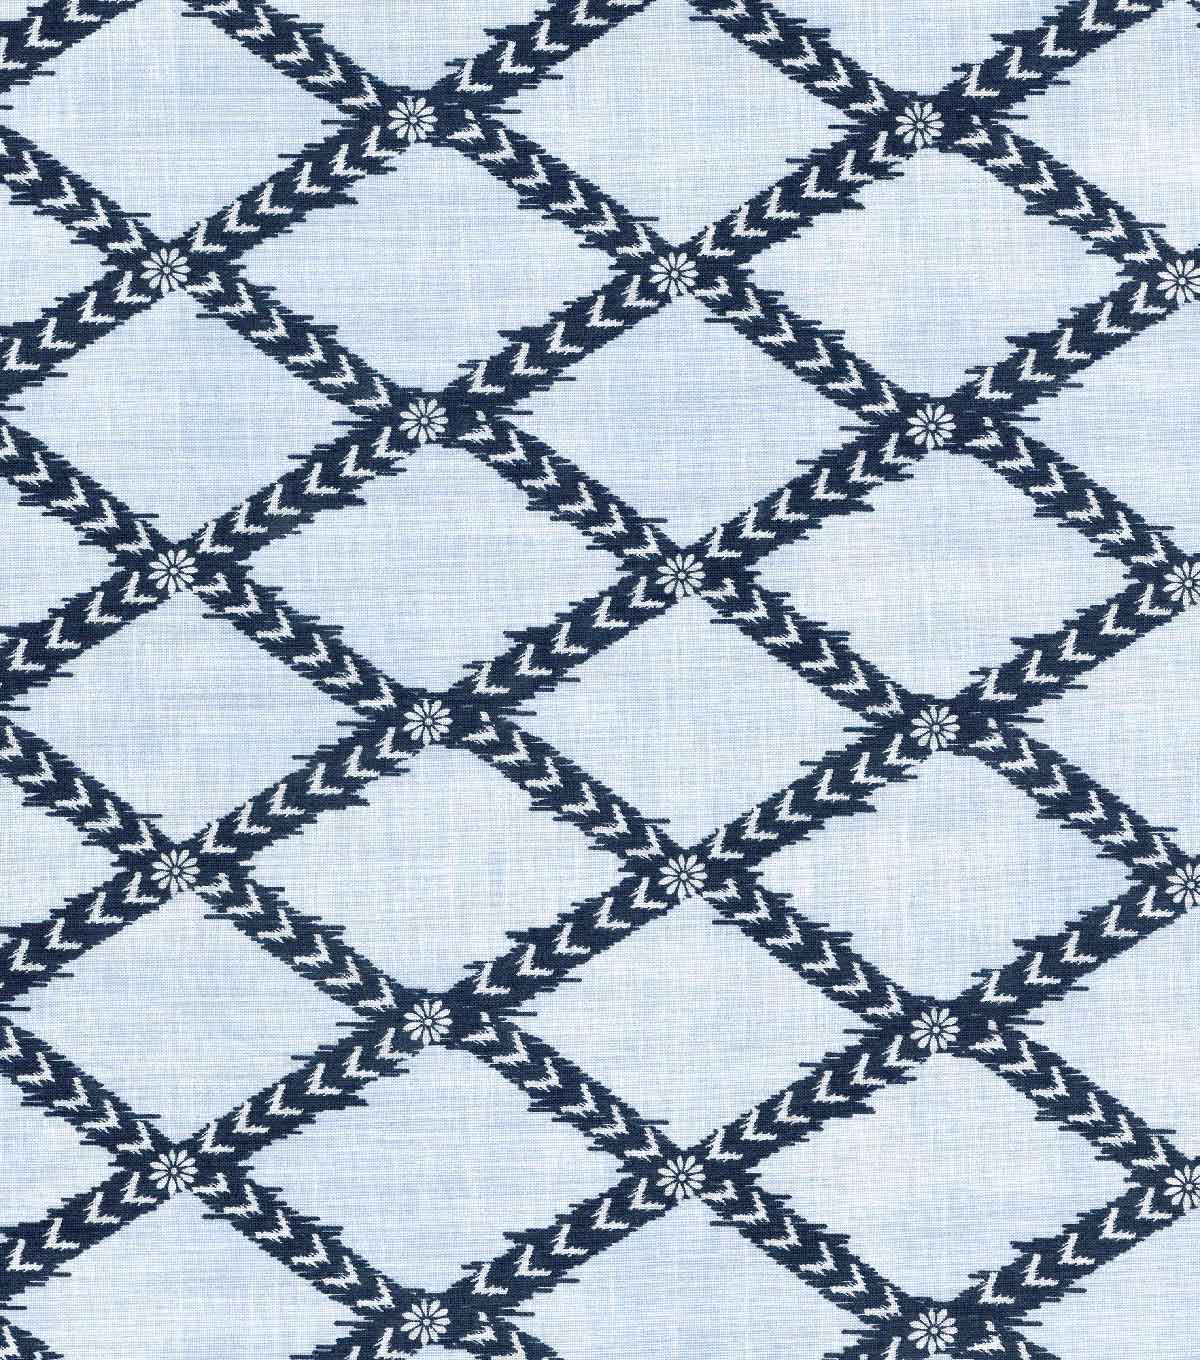 Keepsake Calico Cotton Fabric-Lucy\u0027s Textured Rope